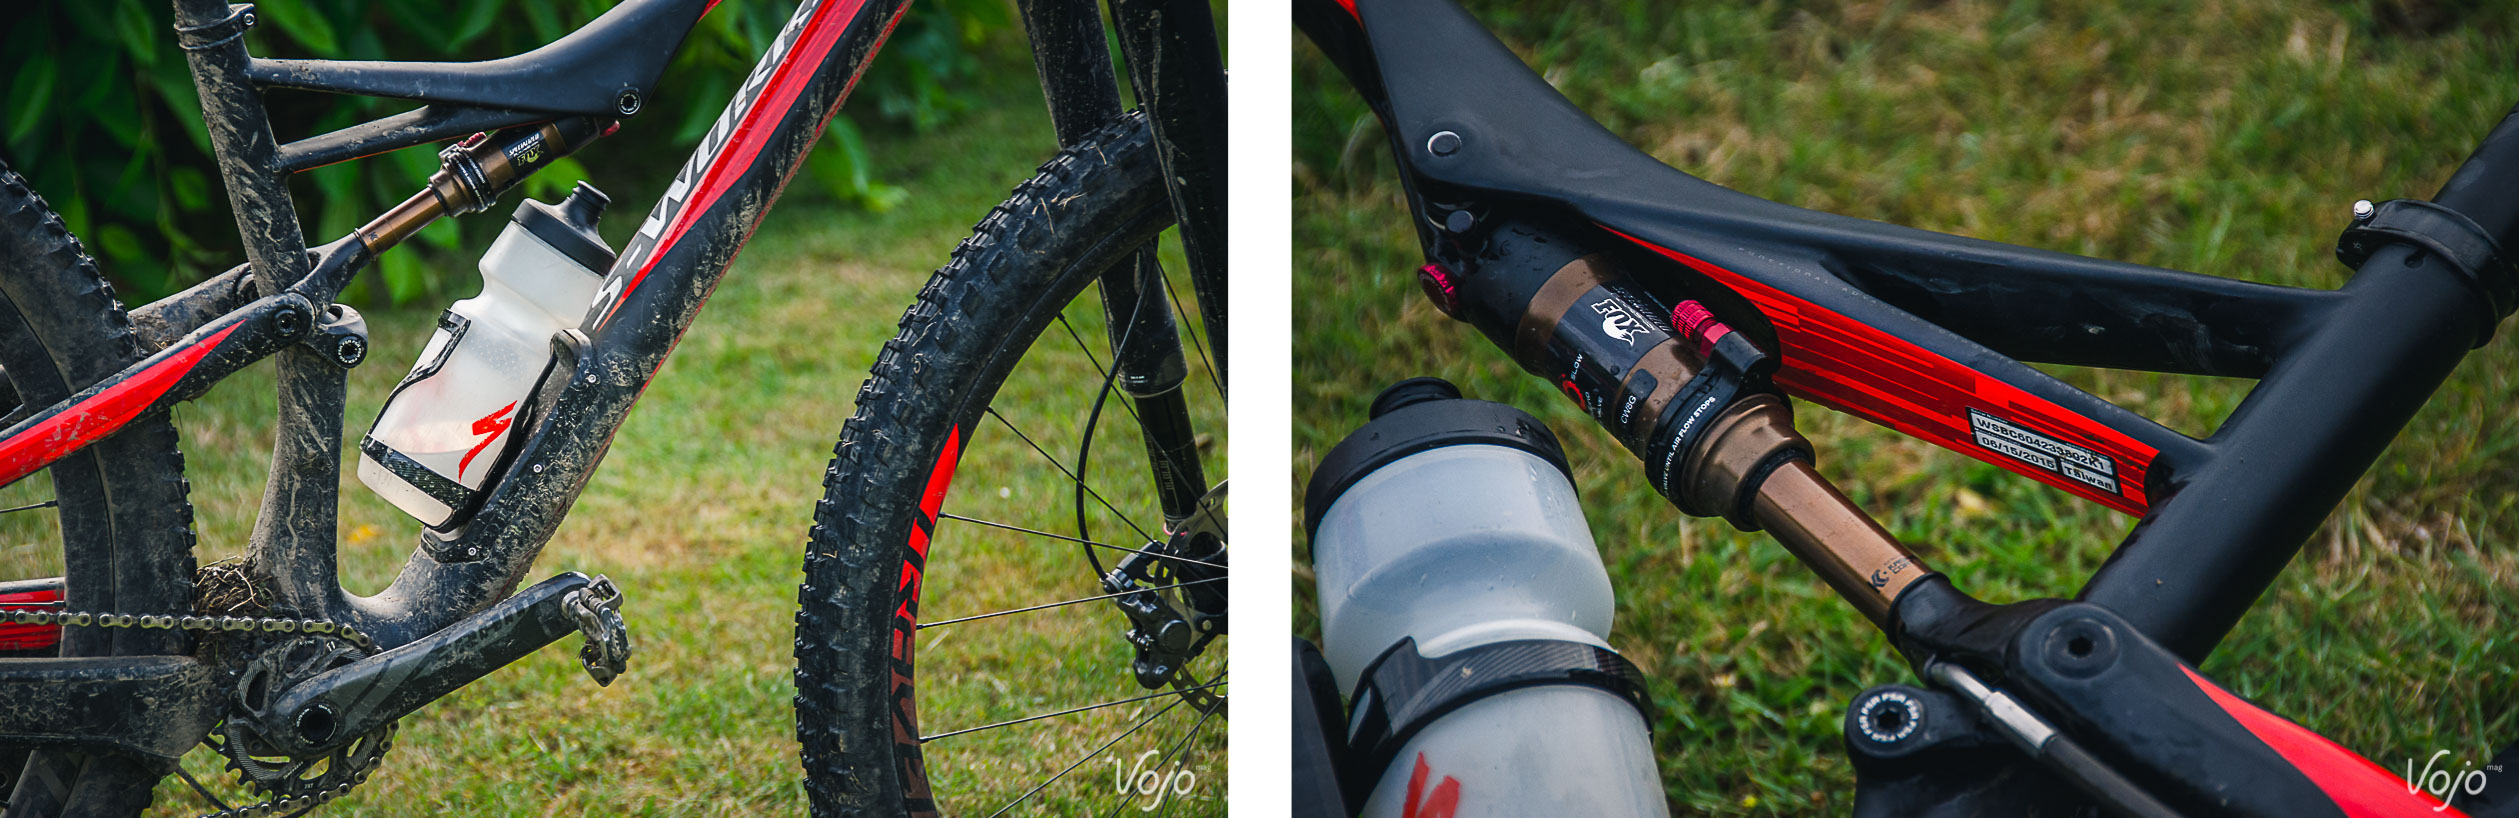 13-Specialized_Camber_2016_Copyright_OBeart_VojoMag